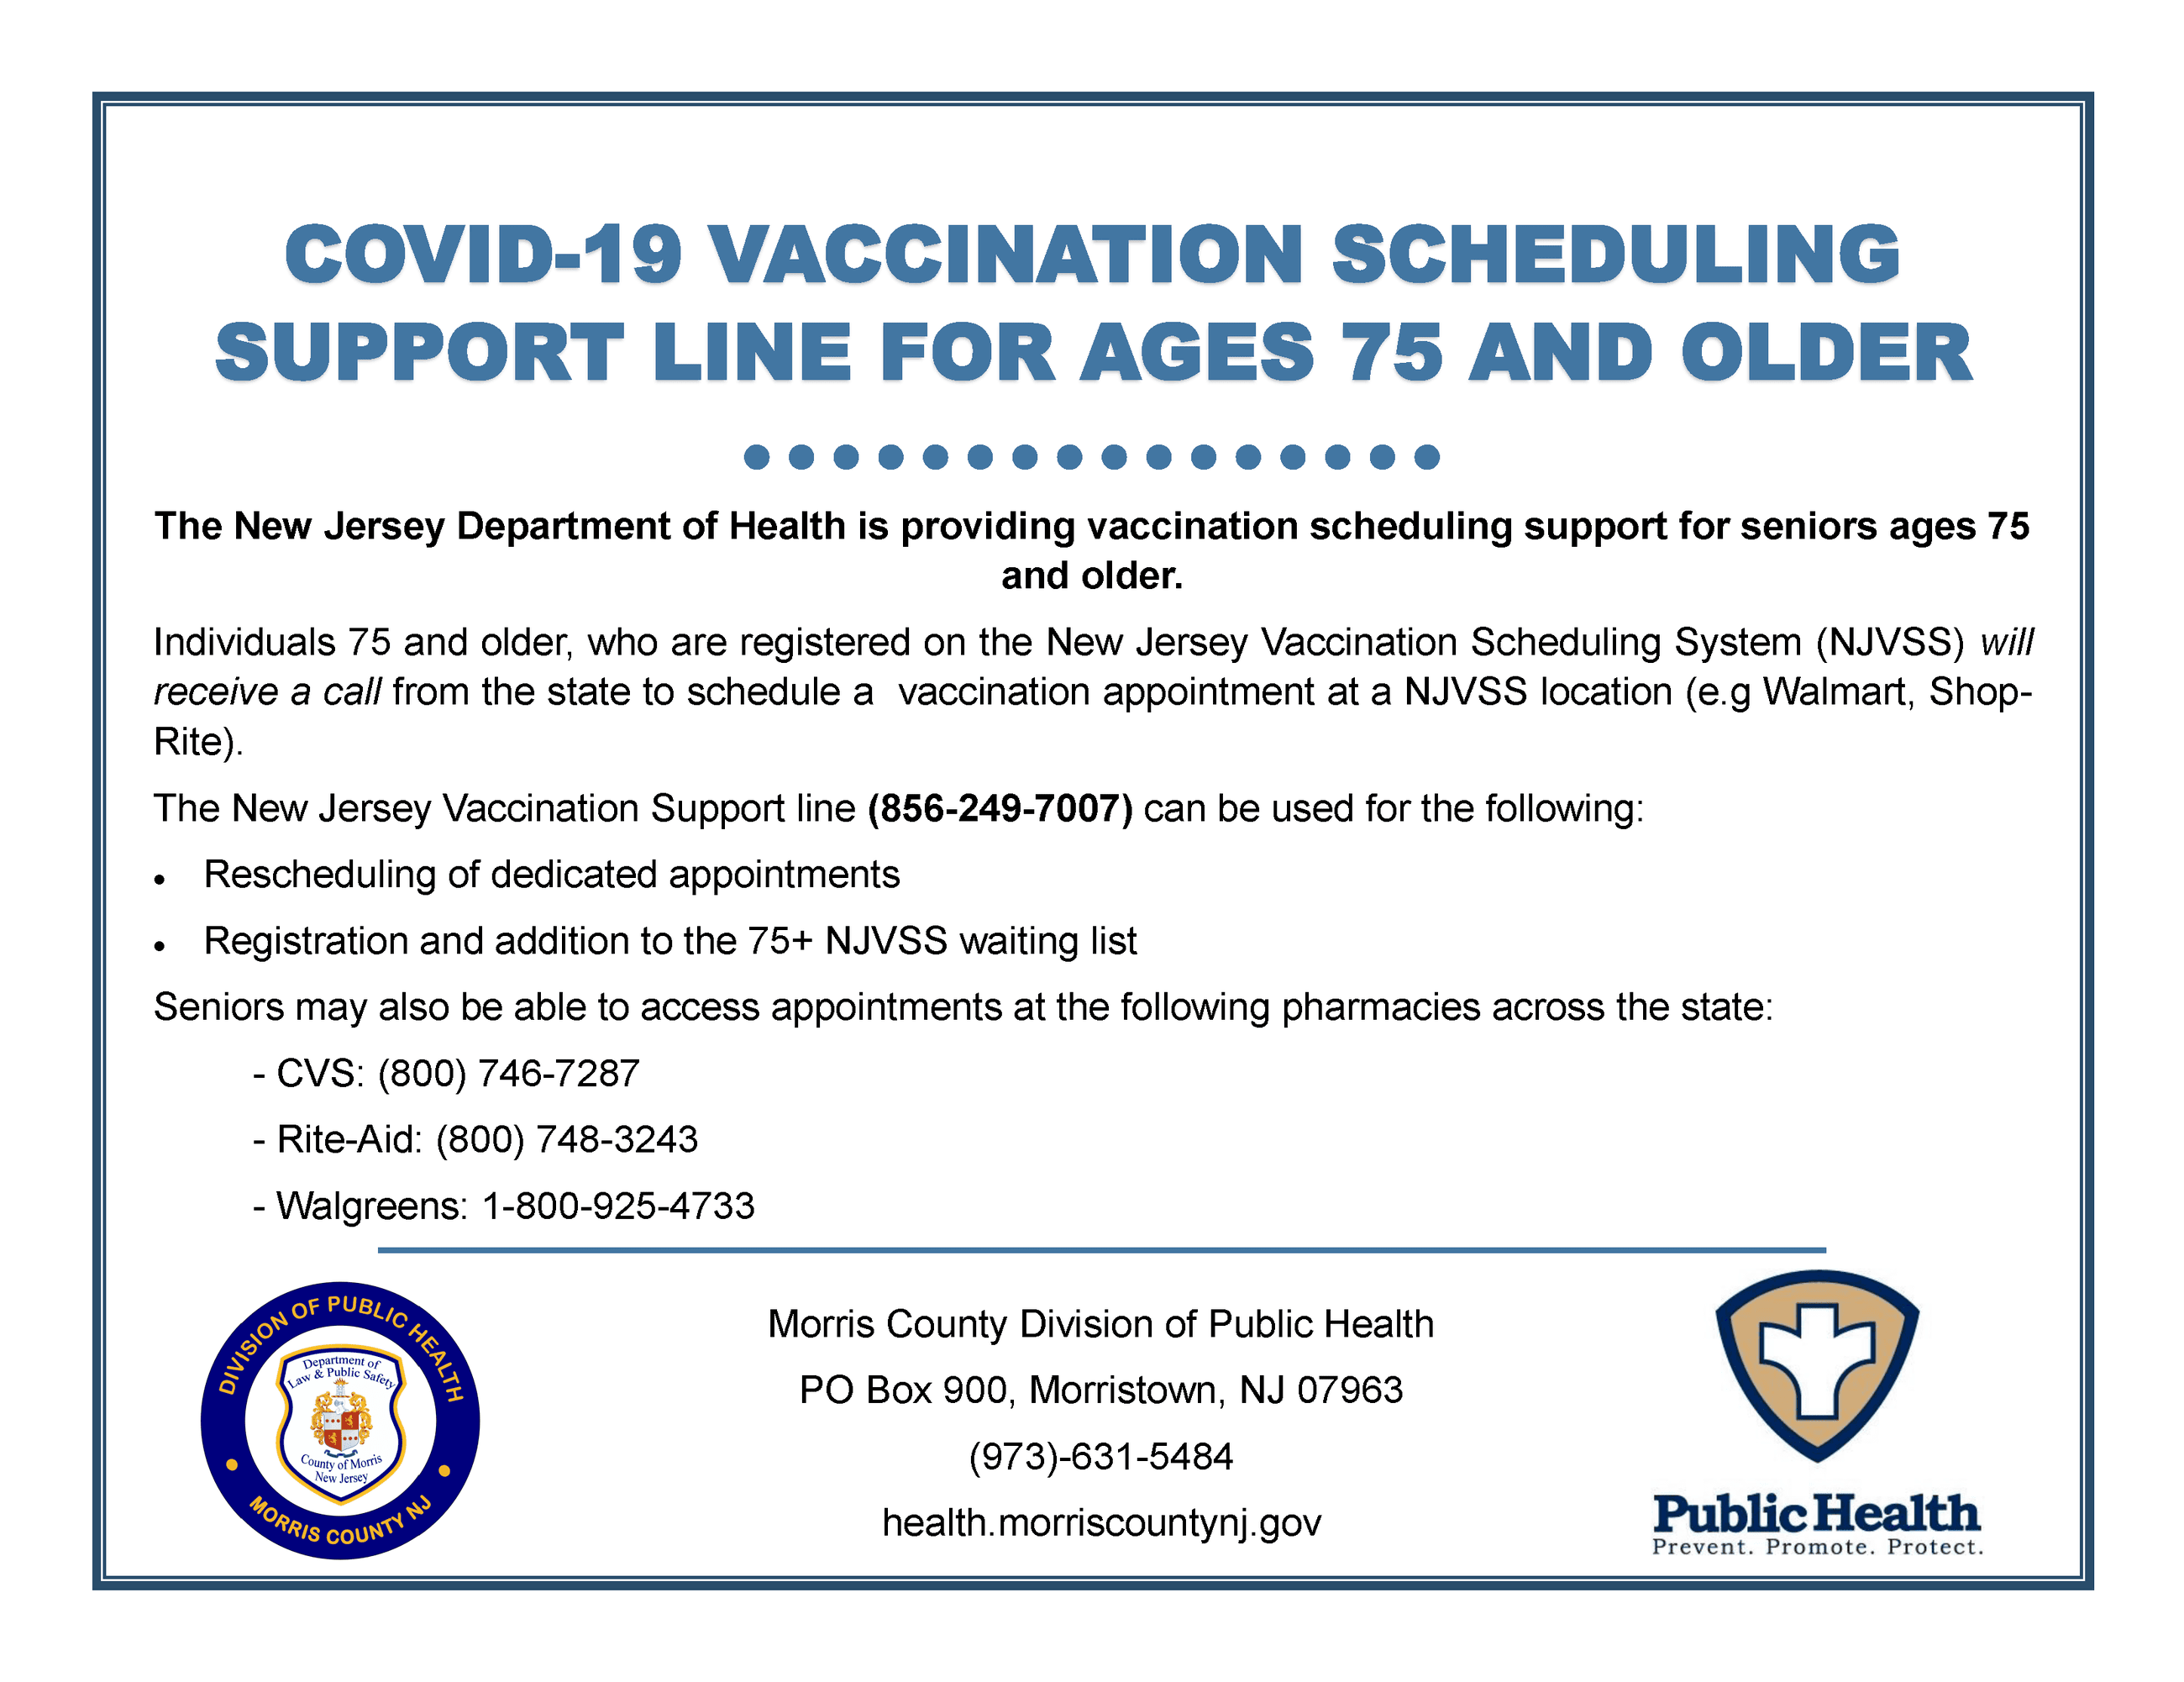 NJ VACCINE SUPPORT LINE FLYER - Hanover[3]